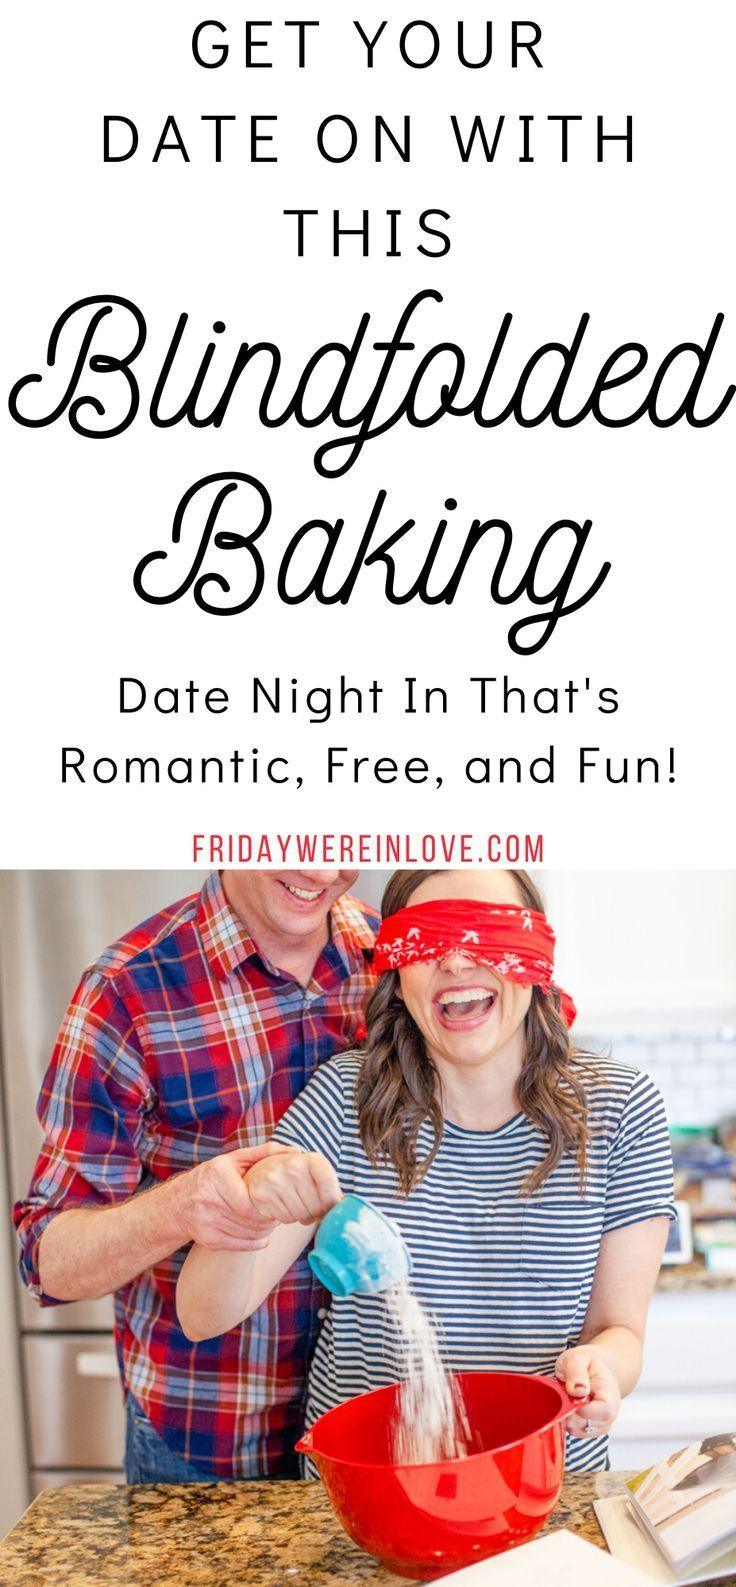 Romantic At-Home Date Idea: Blindfolded Baking -  Get your date on with this romantic date night at home! Blindfolded Baking is a modern update to th - #AtHome #Baking #Blindfolded #Date #firepitideas #Idea #Pregnancycouple #Pregnancycravings #Pregnancygoals #preparingforPregnancy #Romantic #snapchatideas